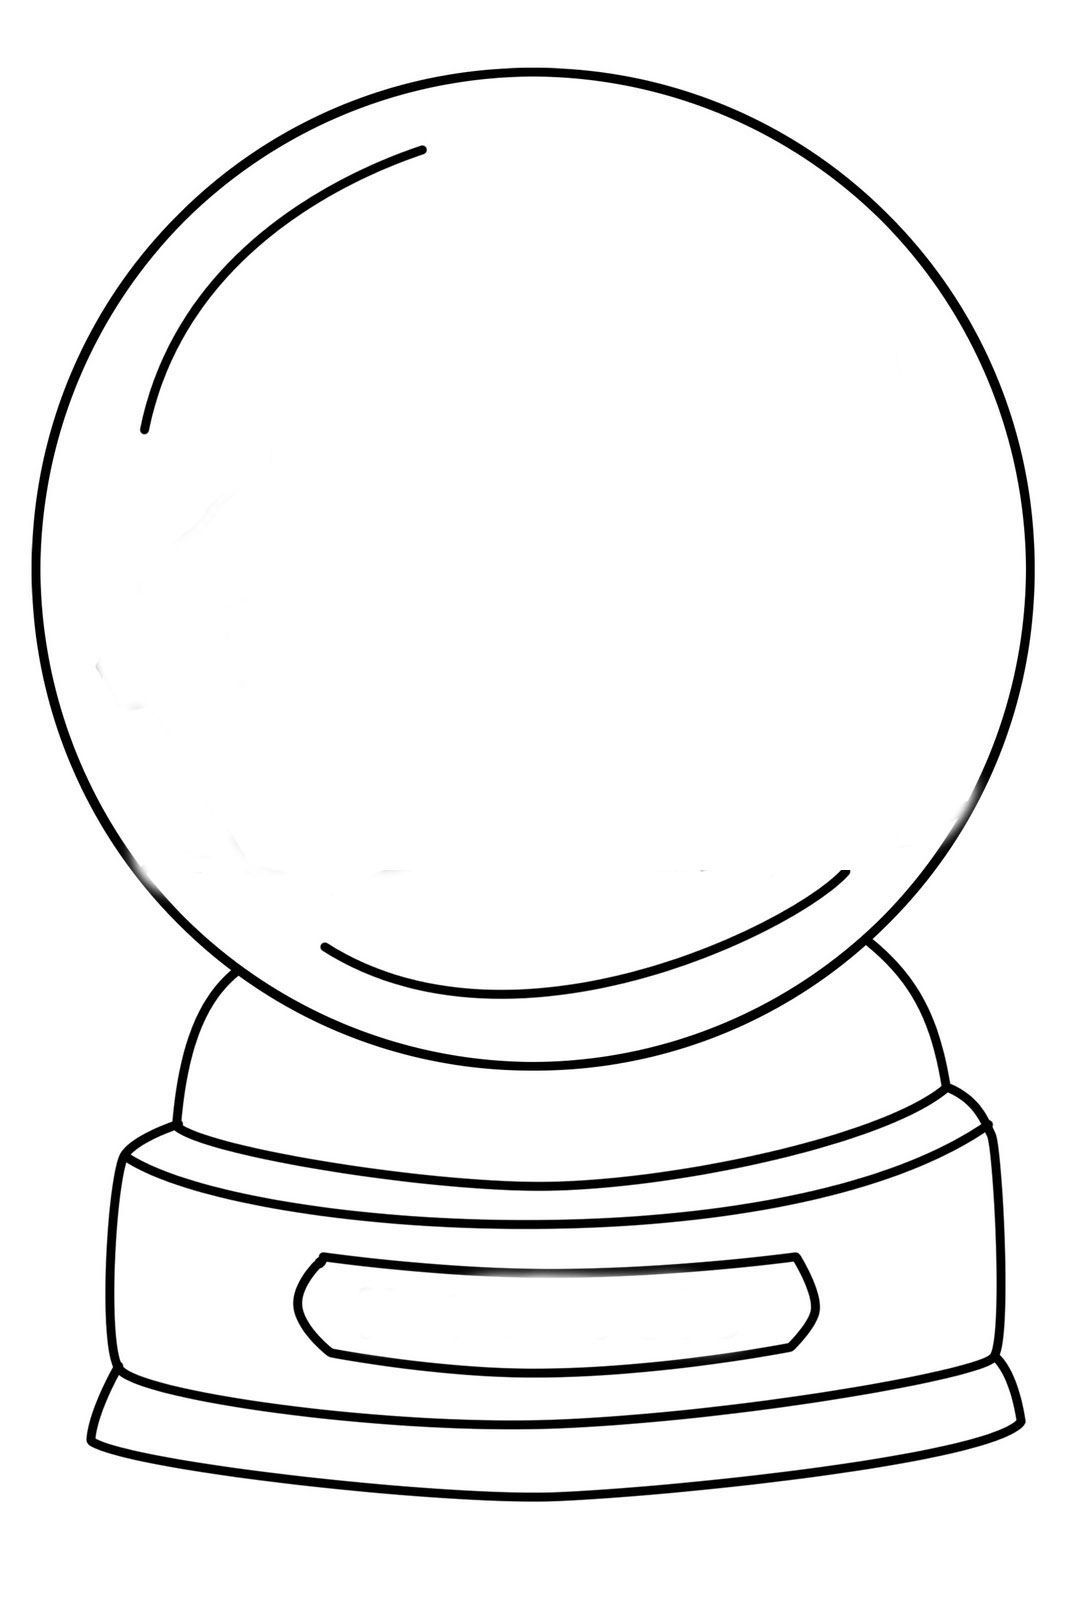 crystal ball coloring pages | Snow Globe Template Printable | Christmas globes ...